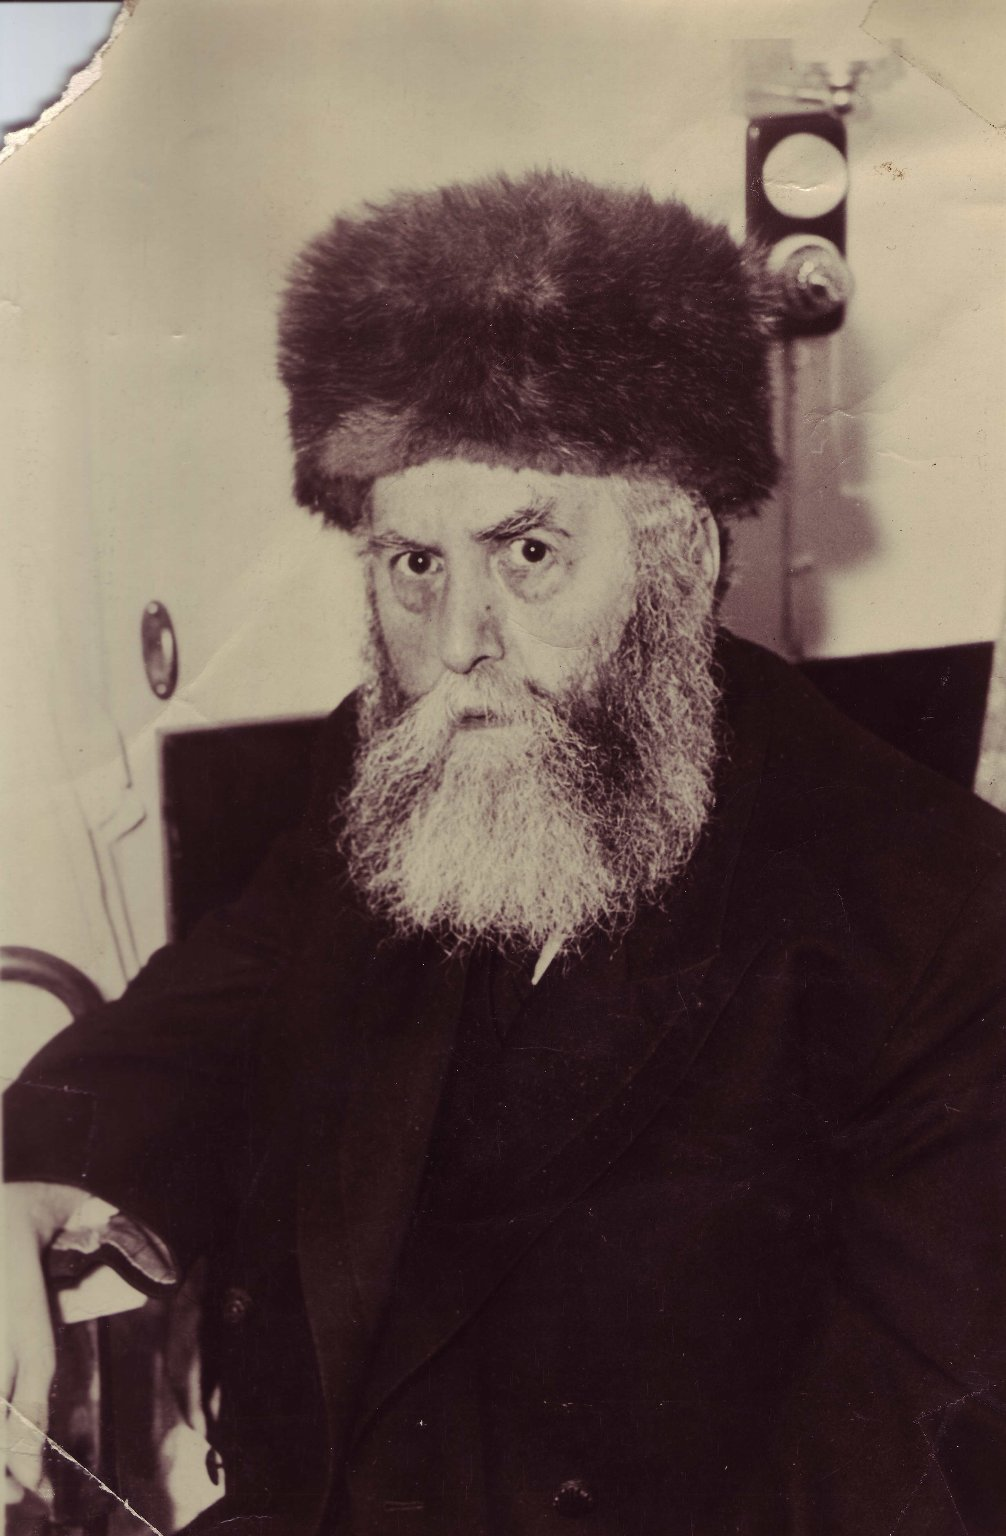 Rabbi Yosef Yitzhak Schneersohn, the Sixth Lubavitcher Rebbe, in his stateroom aboard the S.S. Drottingholm upon his arrival in New York in 1940.